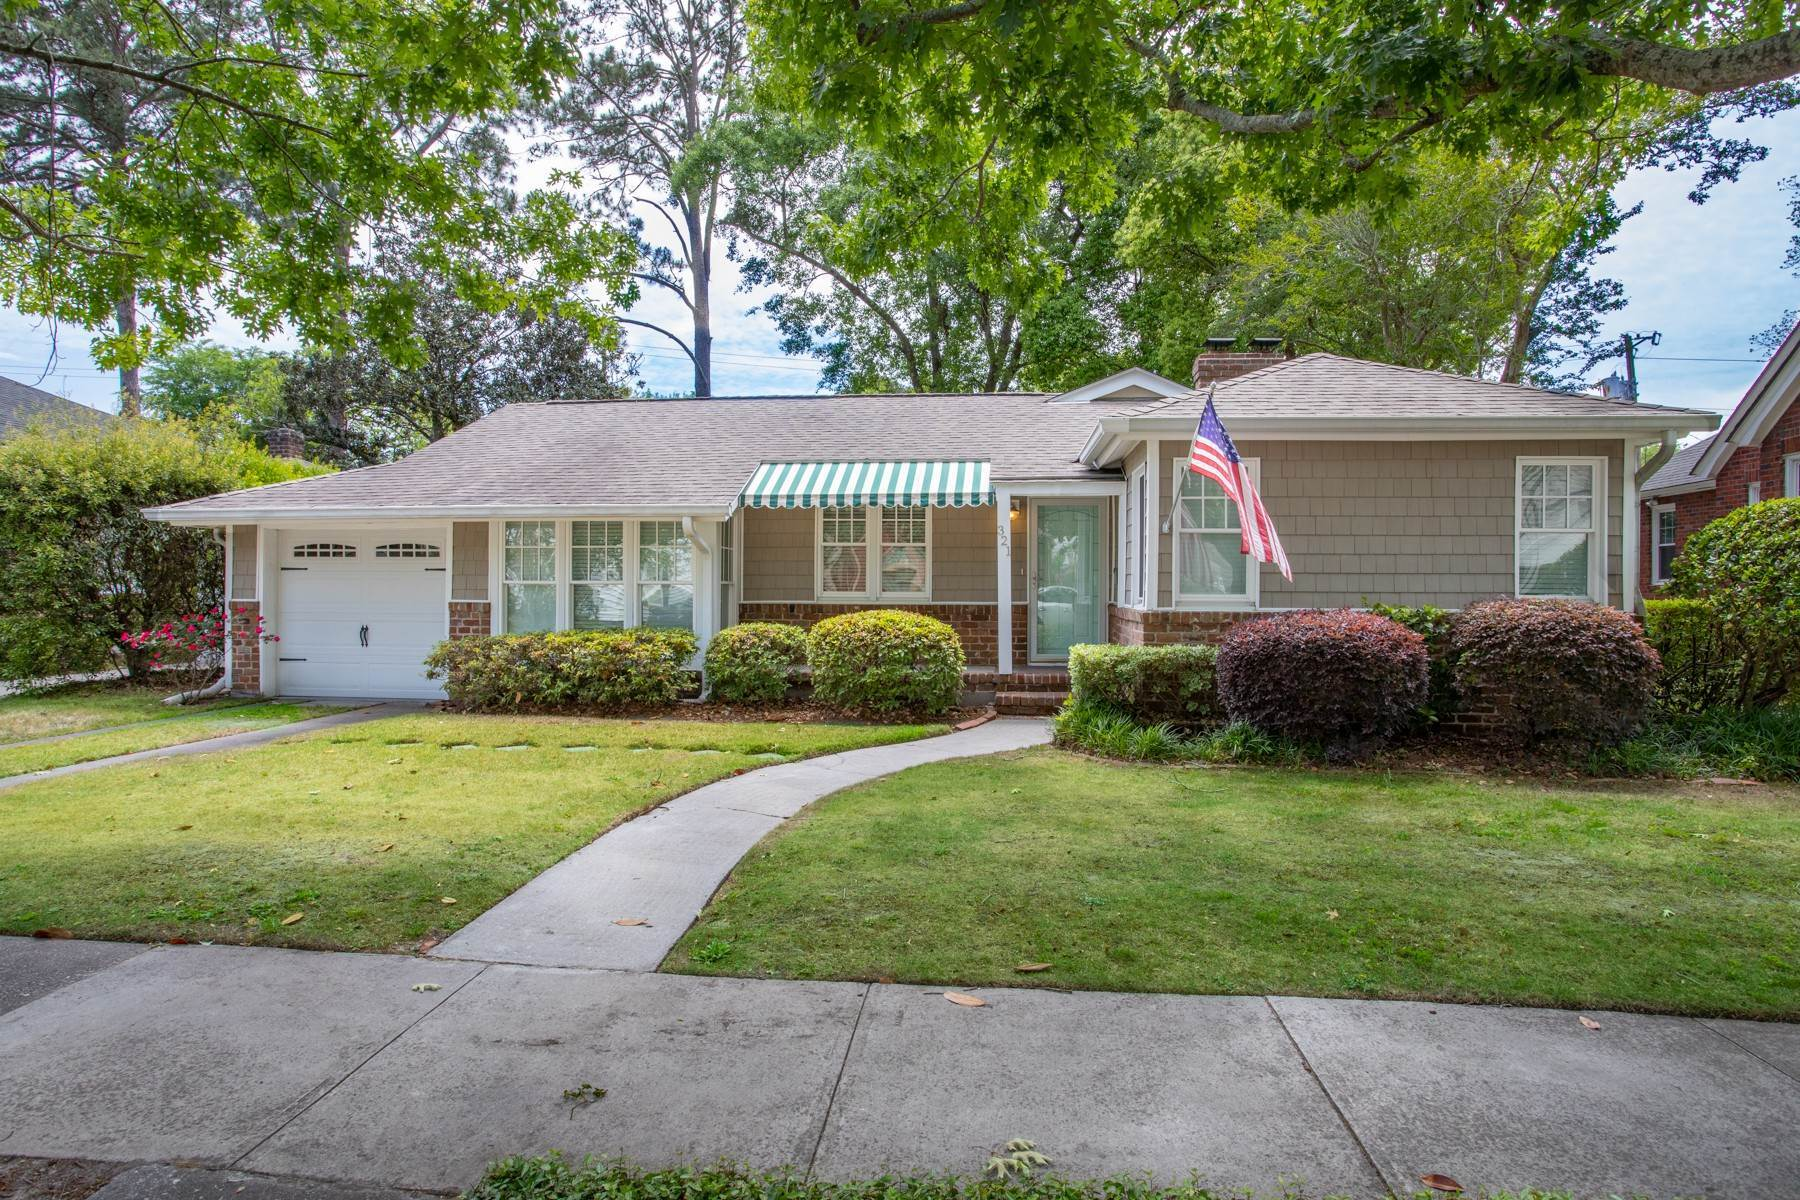 Single Family Homes for Sale at Fabulous Bungalow In Ardsley Park 321 E 52nd Street Savannah, Georgia 31405 United States